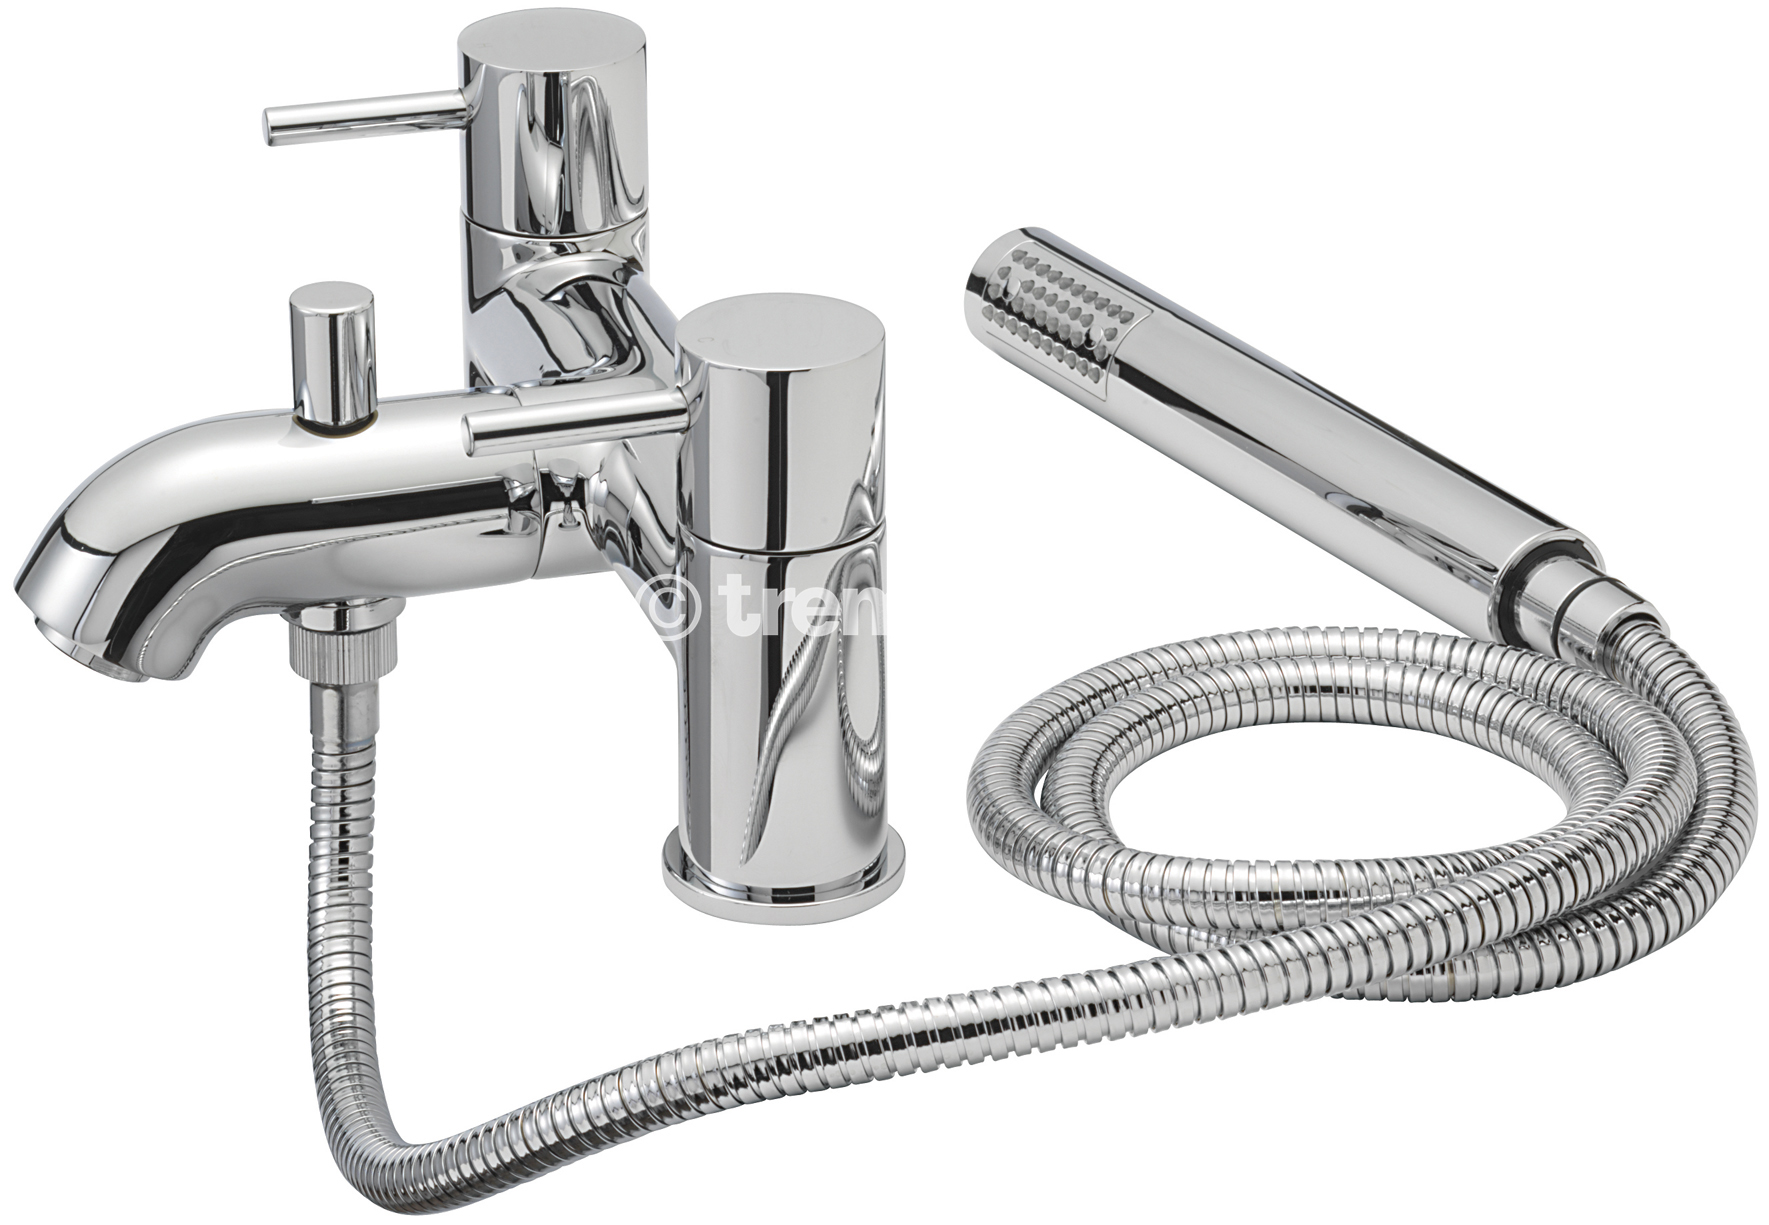 TRE MERCATI MILAN PILLAR BATH SHOWER MIXER COMPLETE WITH KIT - CHROME PLATED